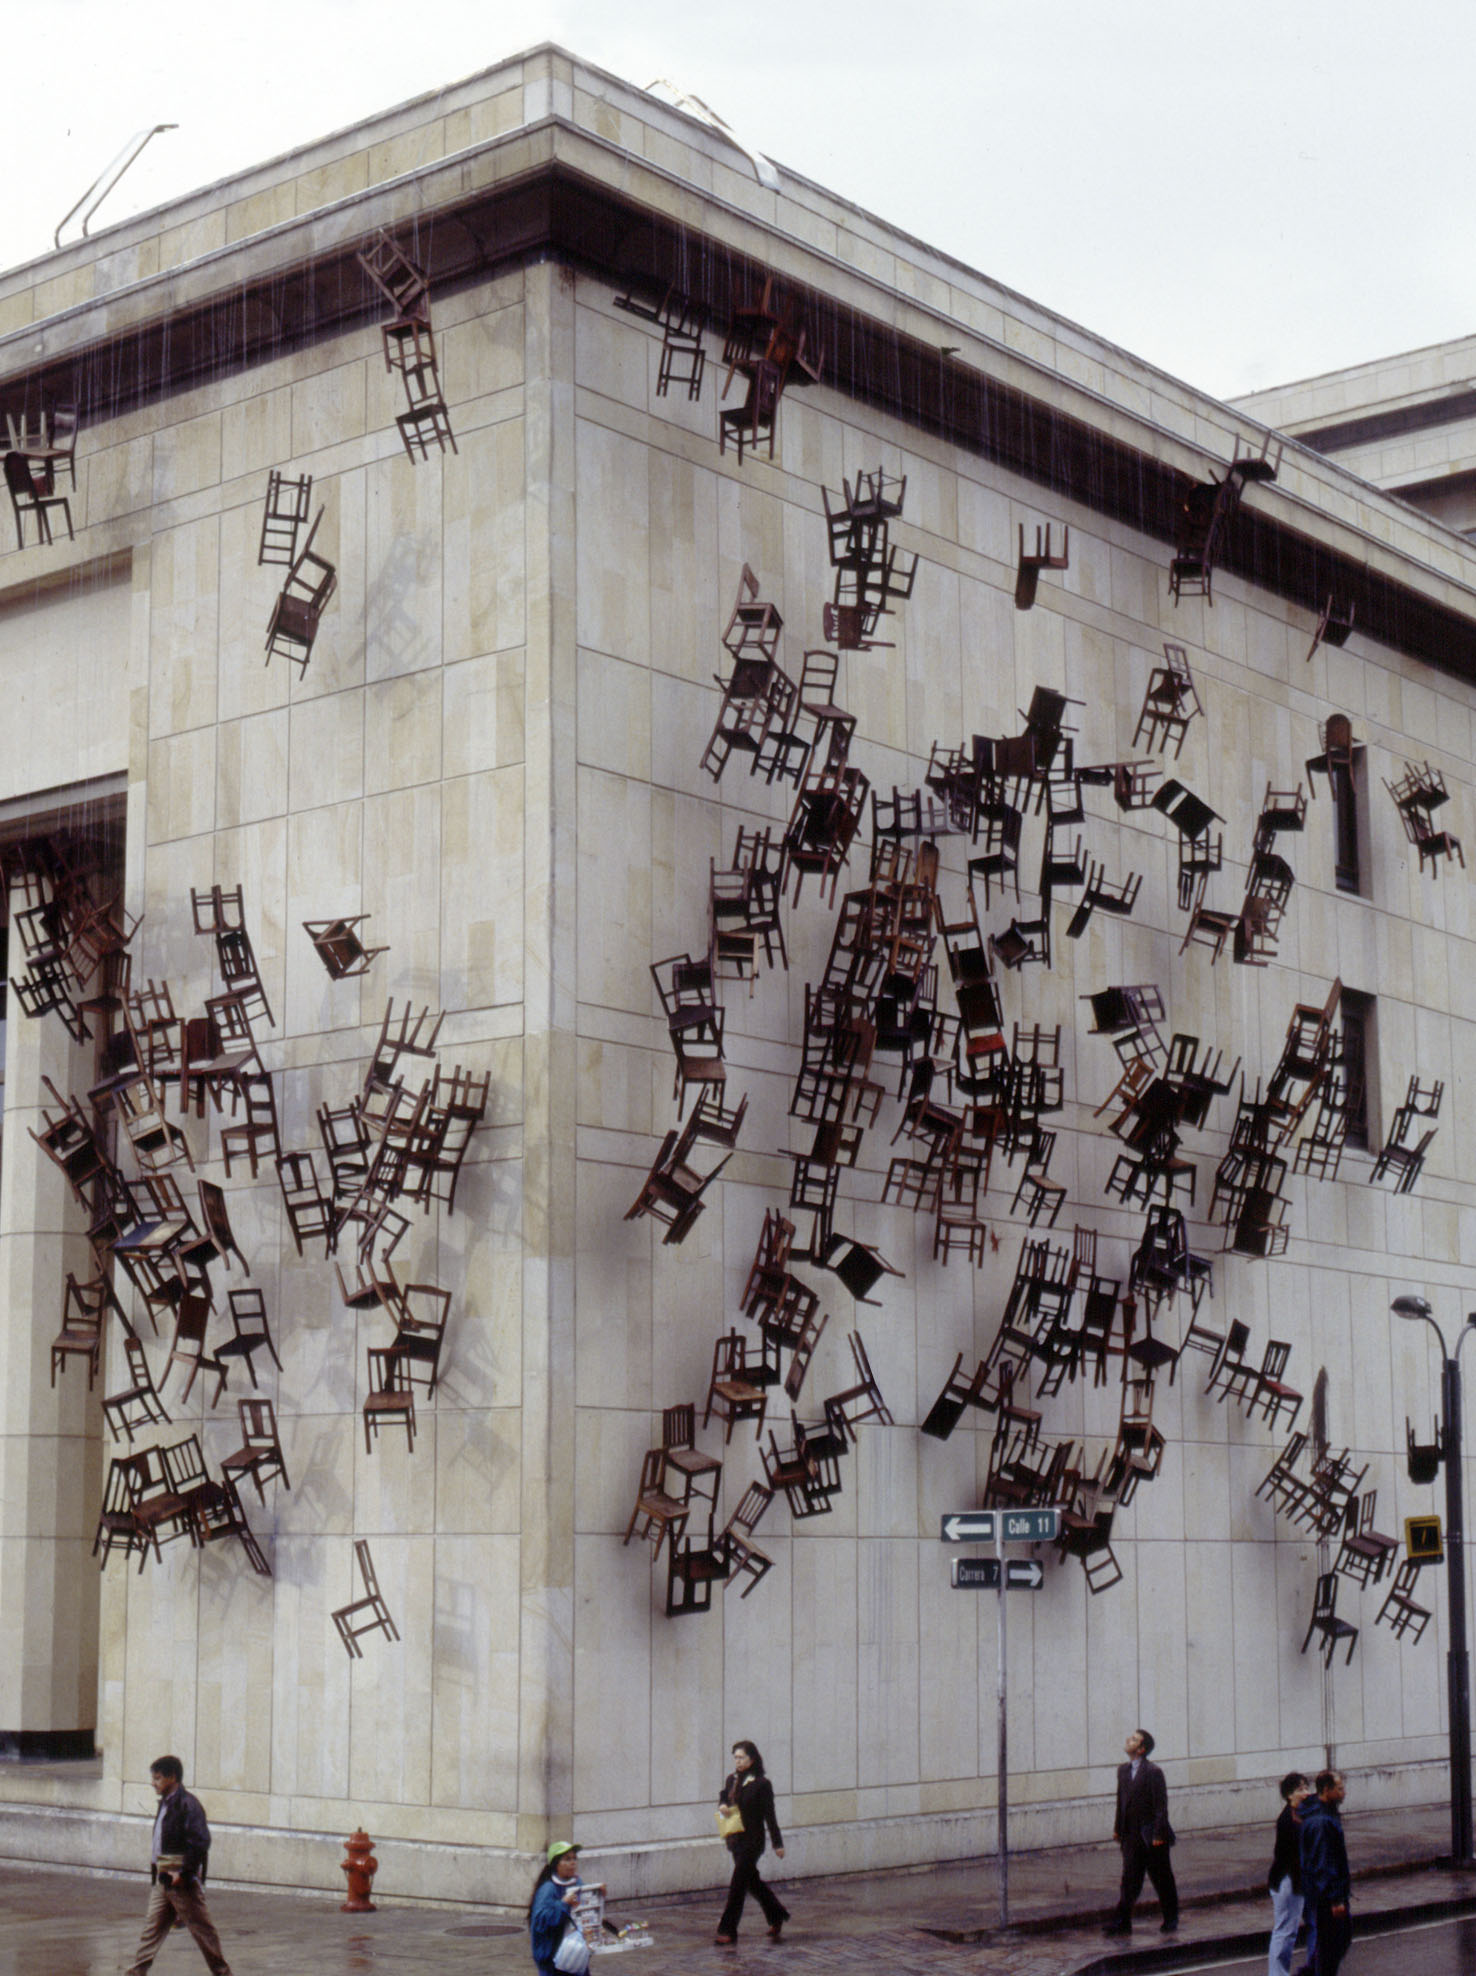 Doris Salcedo,  Noviembre 6 y 7  2002, two hundred and eighty wooden chairs and rope, dimensions variable ephemeral public project, Palace of Justice, Bogotá, 2002. photo: Sergio Clavijo, image courtesy Alexander and Bonin, New York.